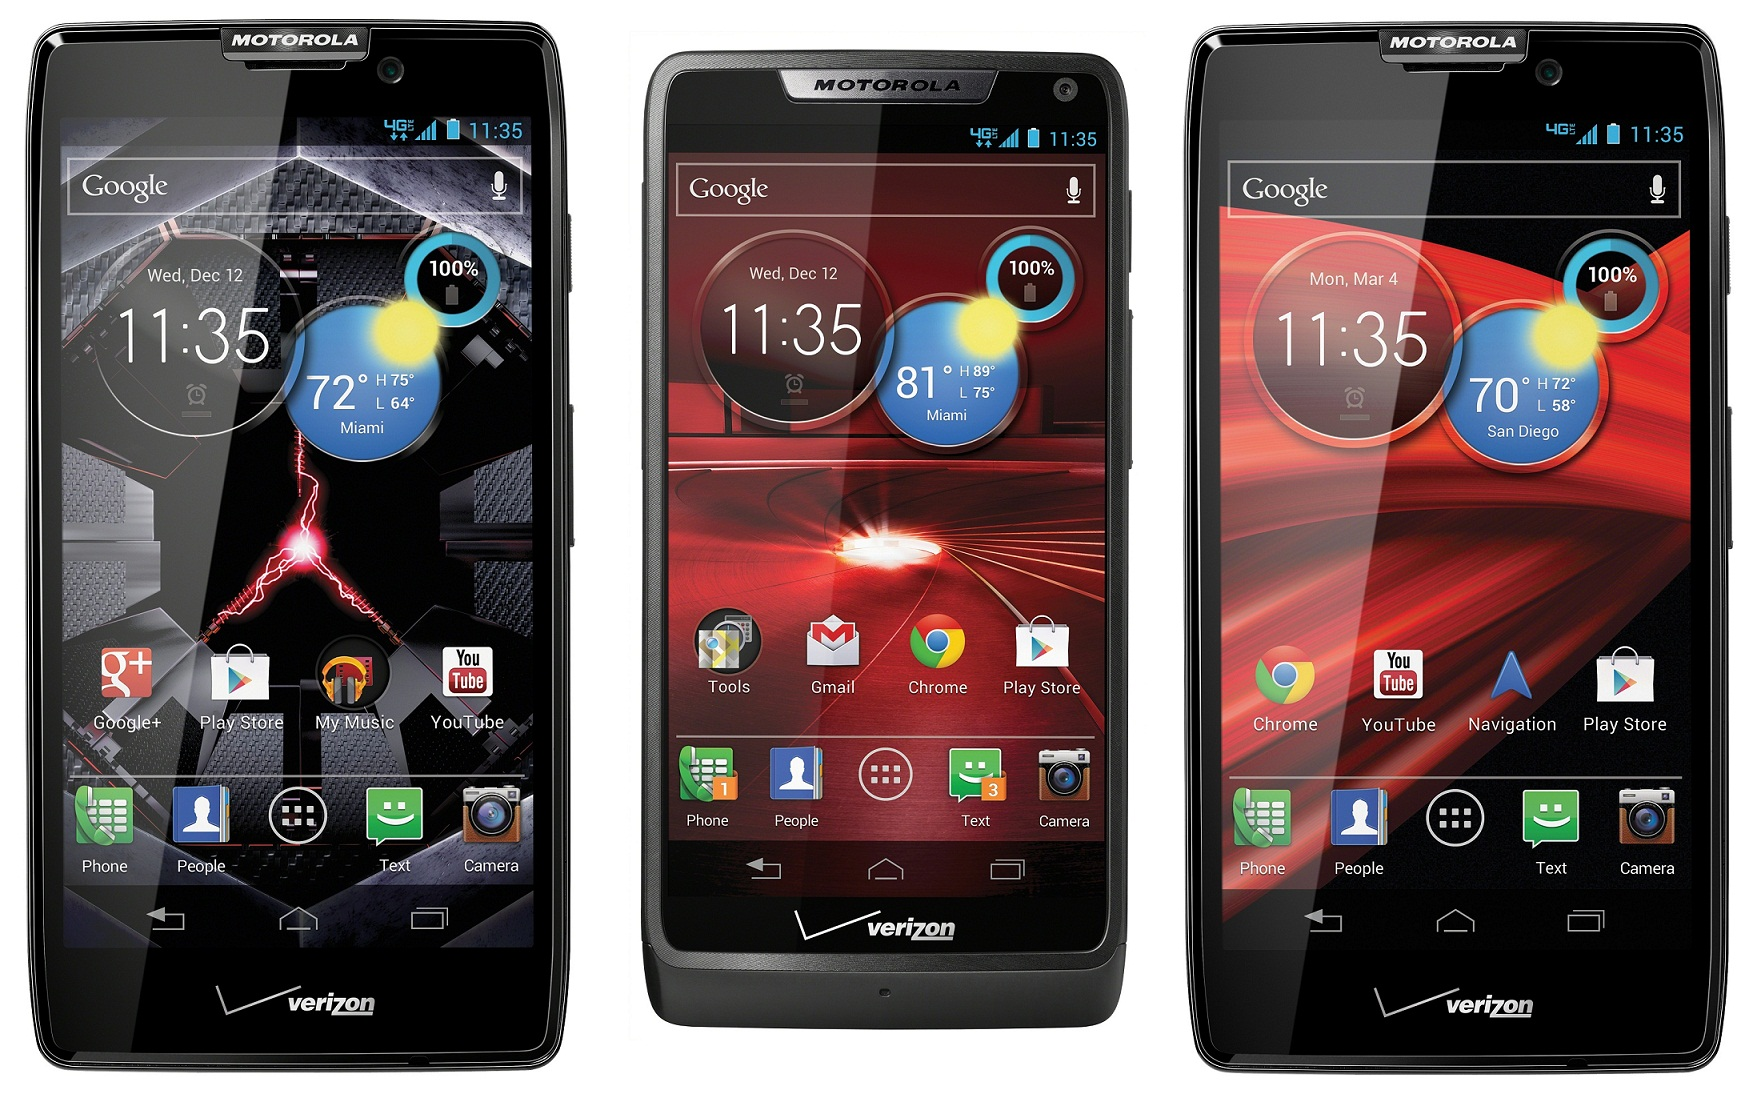 Google may continue the friendly Motorola, Verizon friendship with an X Phone announcement.